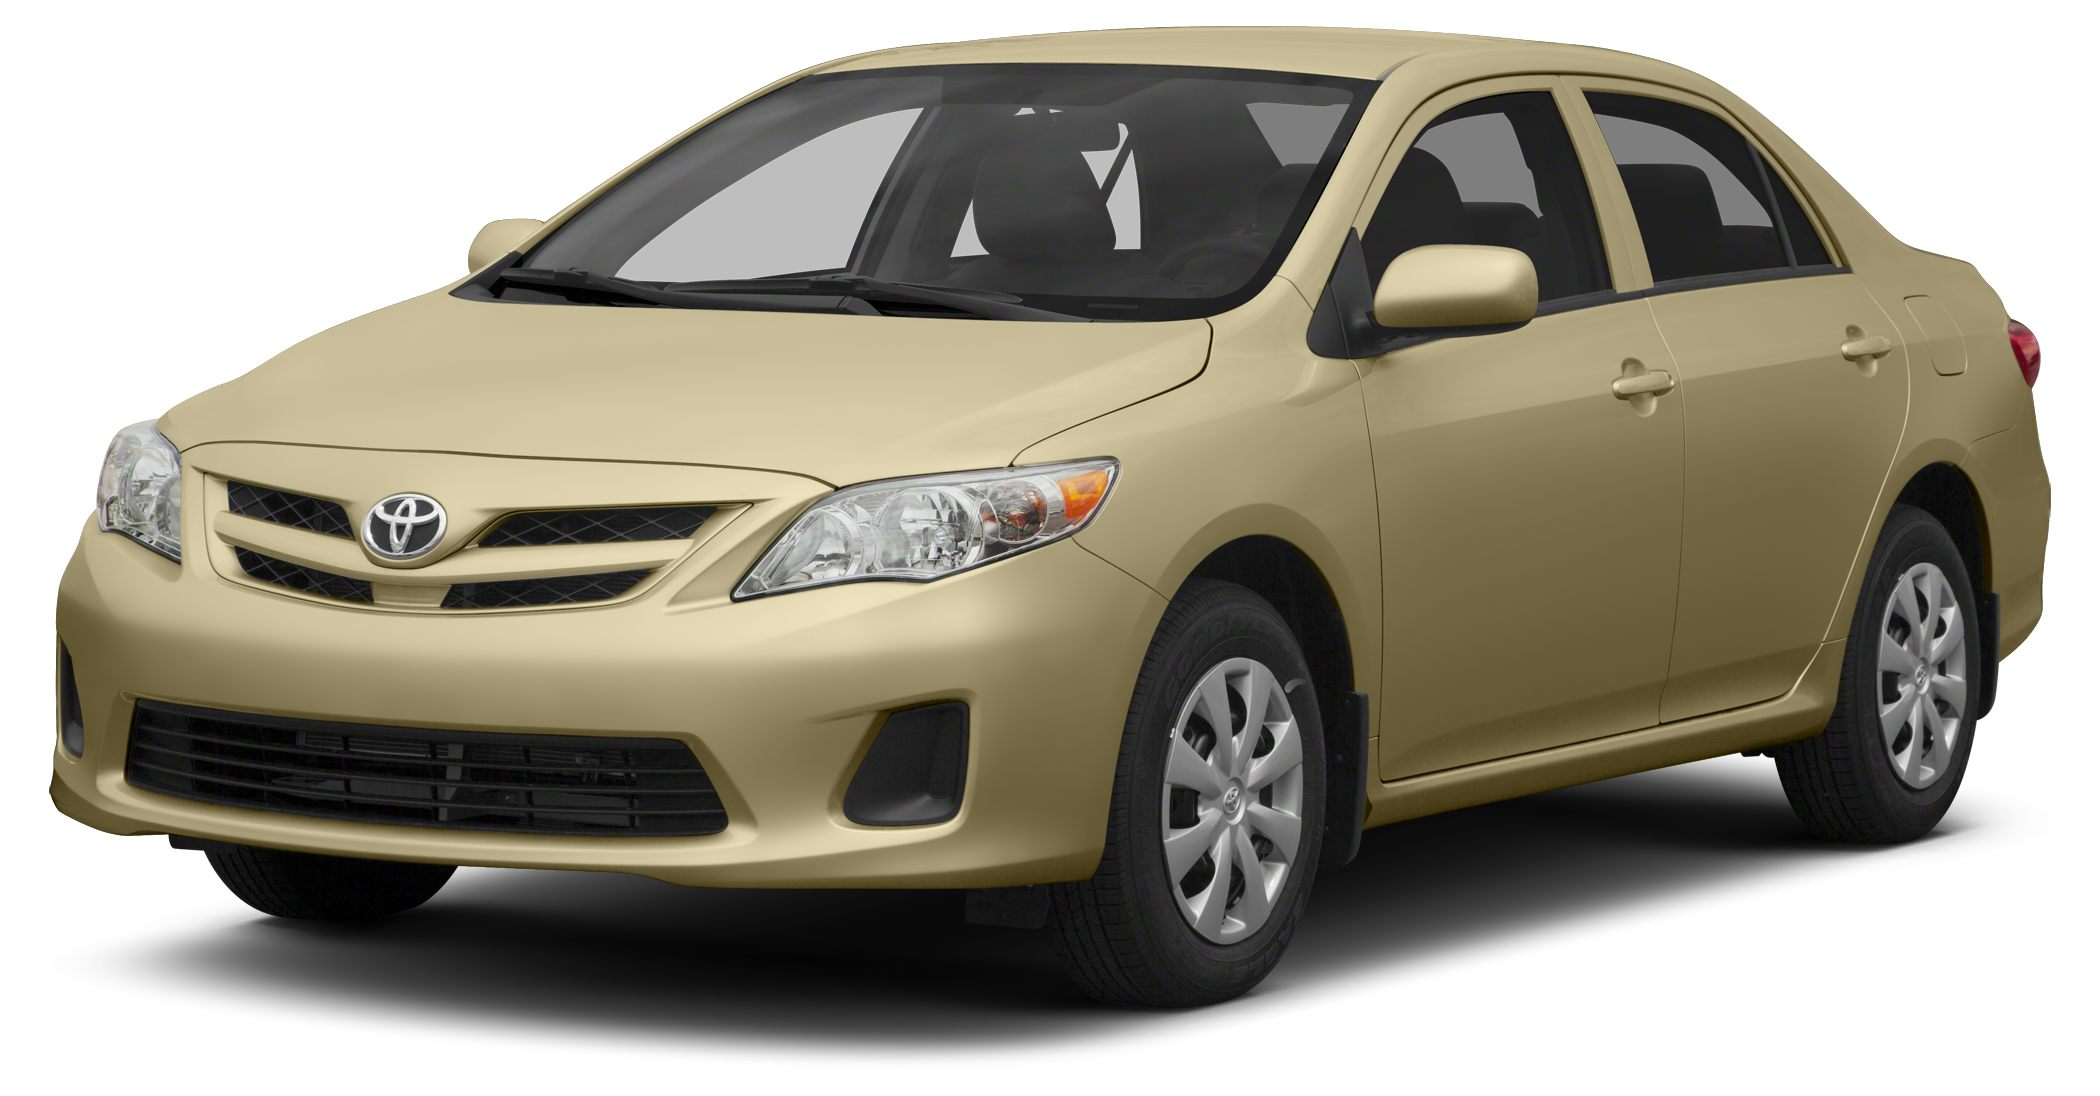 2013 Toyota Corolla LE EPA 34 MPG Hwy26 MPG City SANDY BEACH METALLIC exterior and BISQUE interi